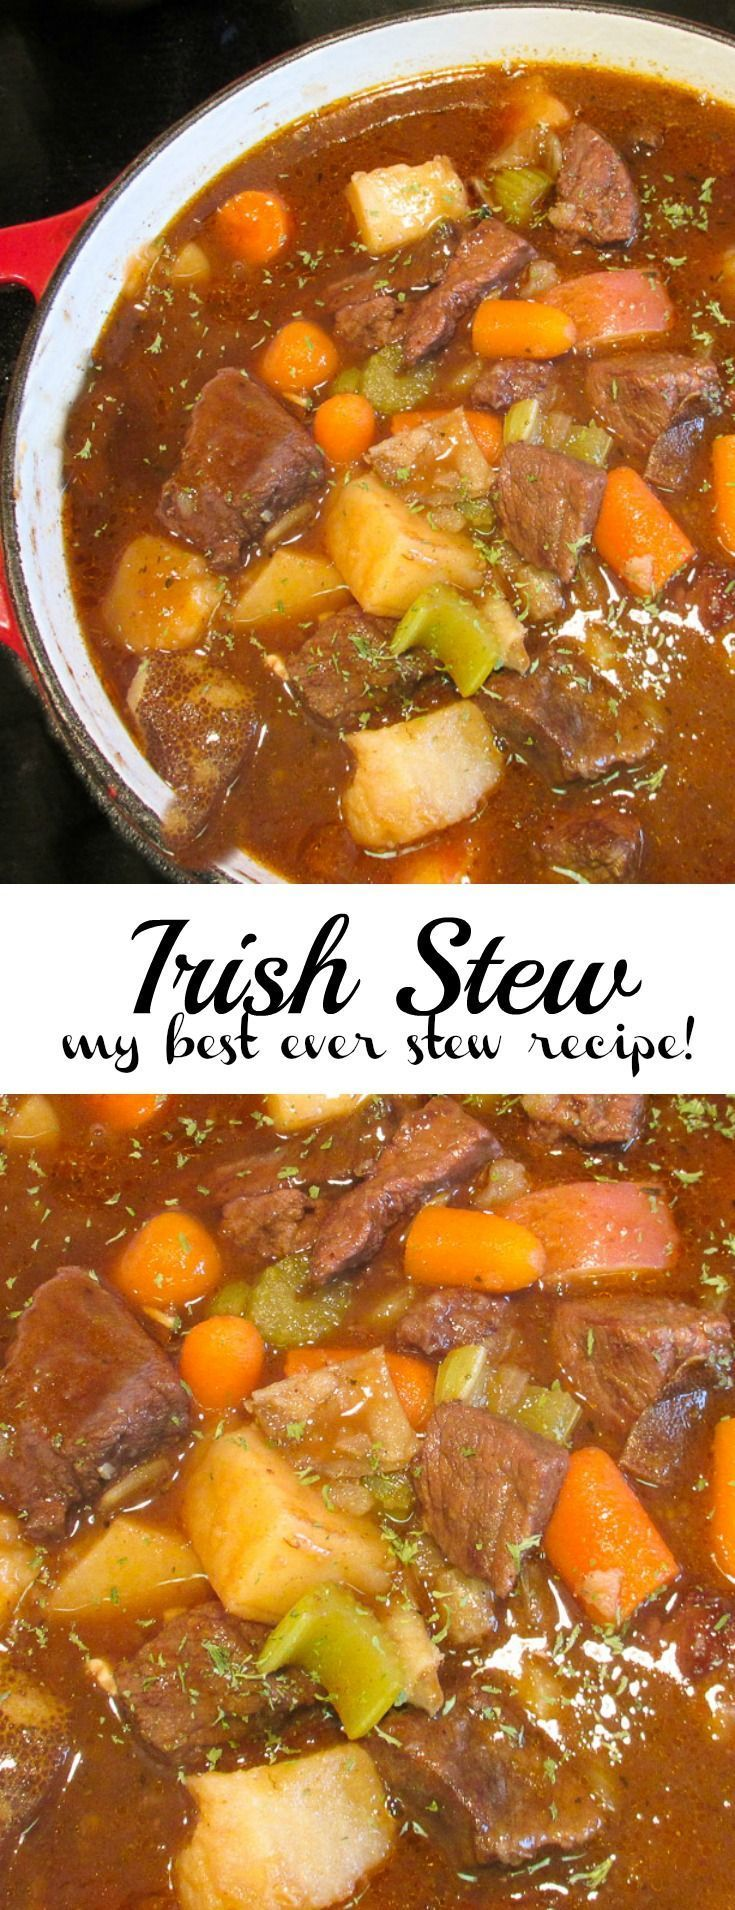 This Irish Stew is the best stew I've ever made. Flavoured with red wine and…